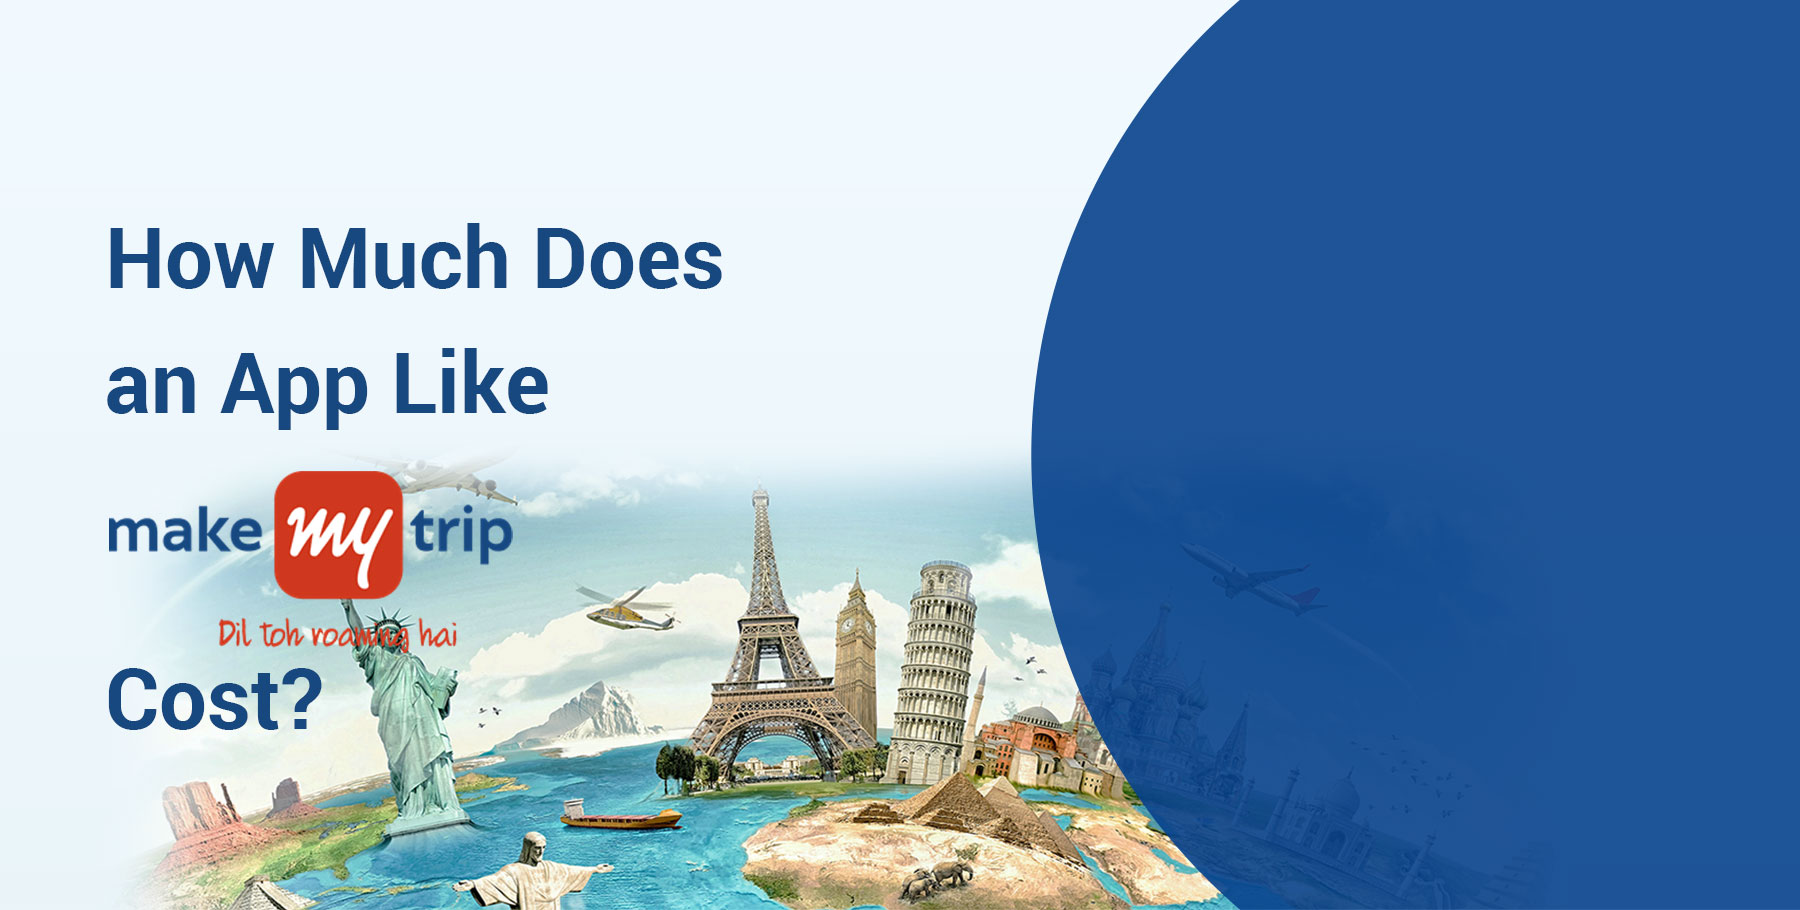 makemytrip travel app